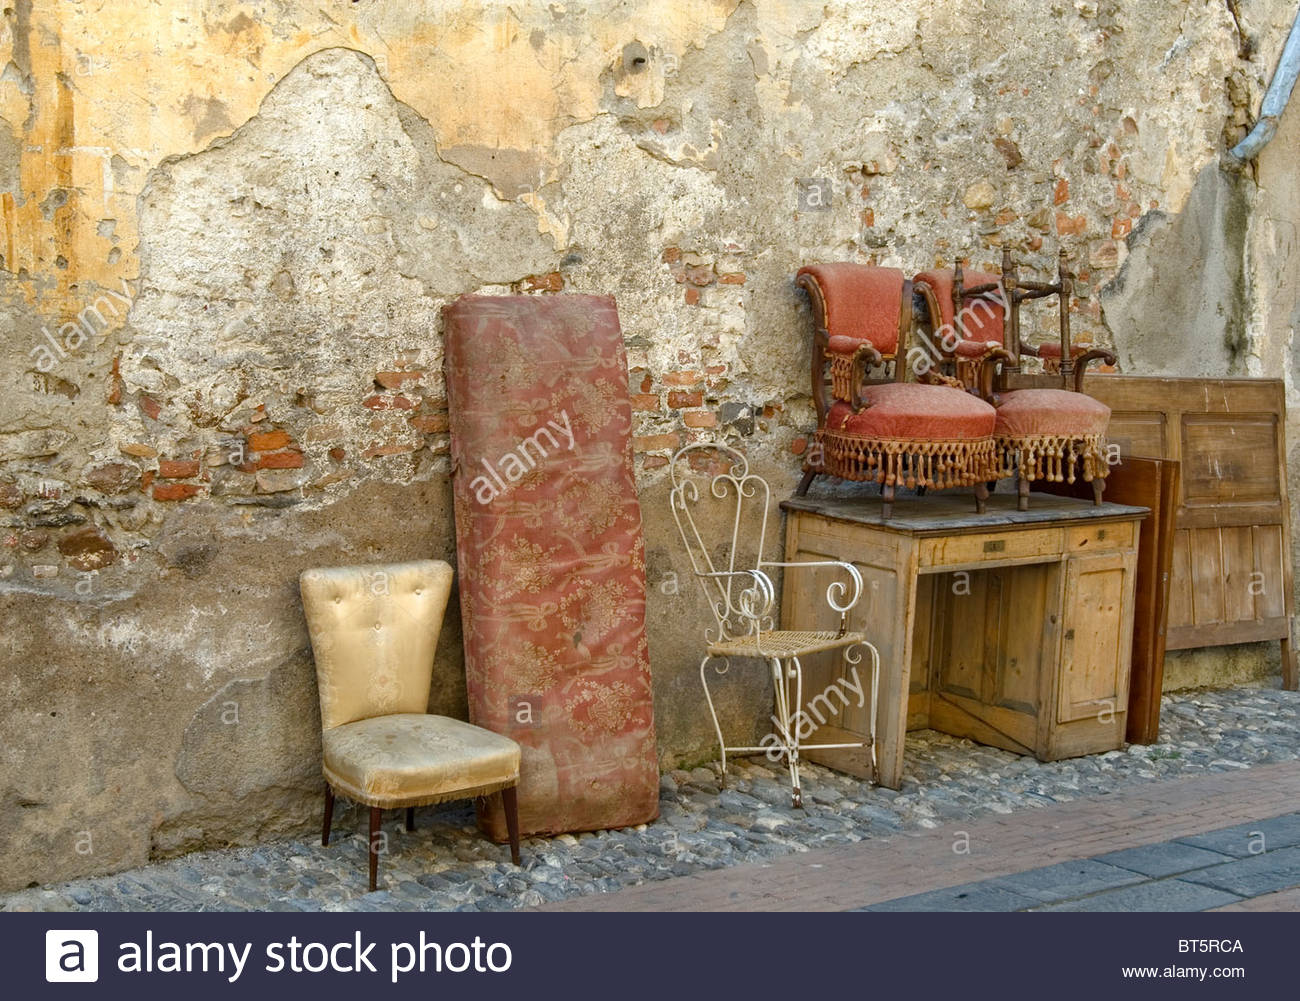 Antique furniture left behind in a backyard of the old town of Albenga, Liguria, North West Italy. - Stock Image